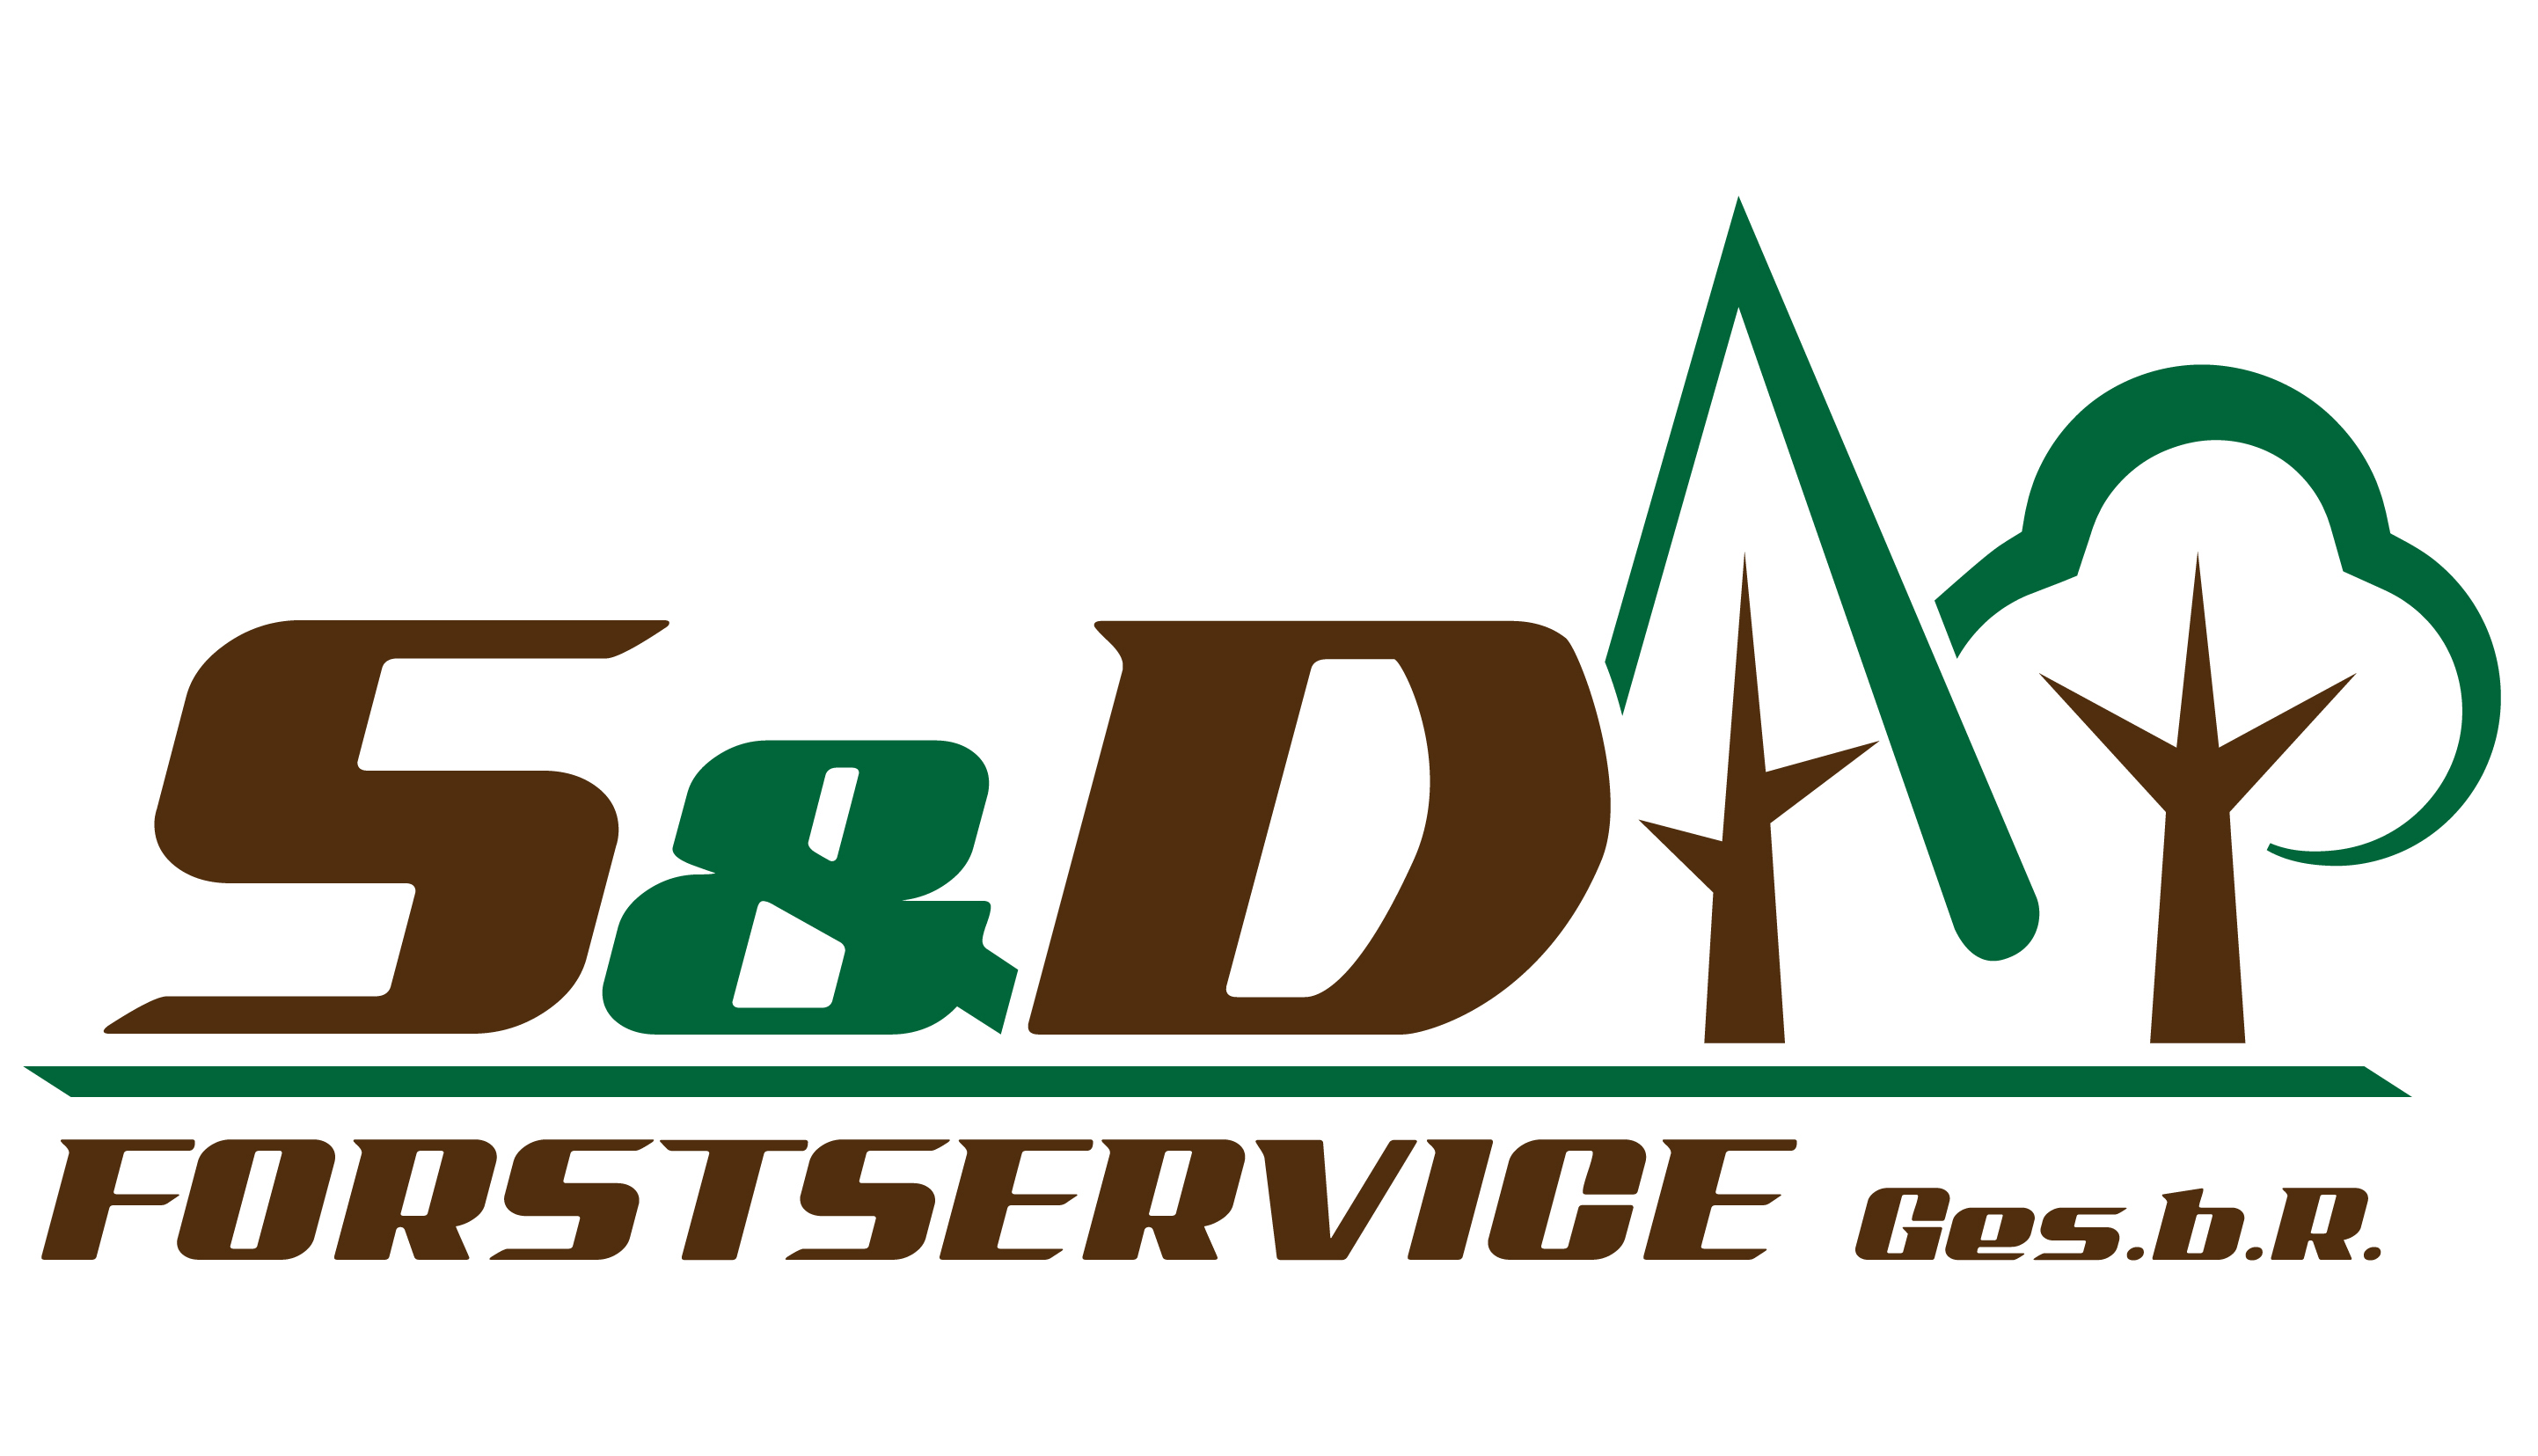 S&D Forstservice Ges.b.R